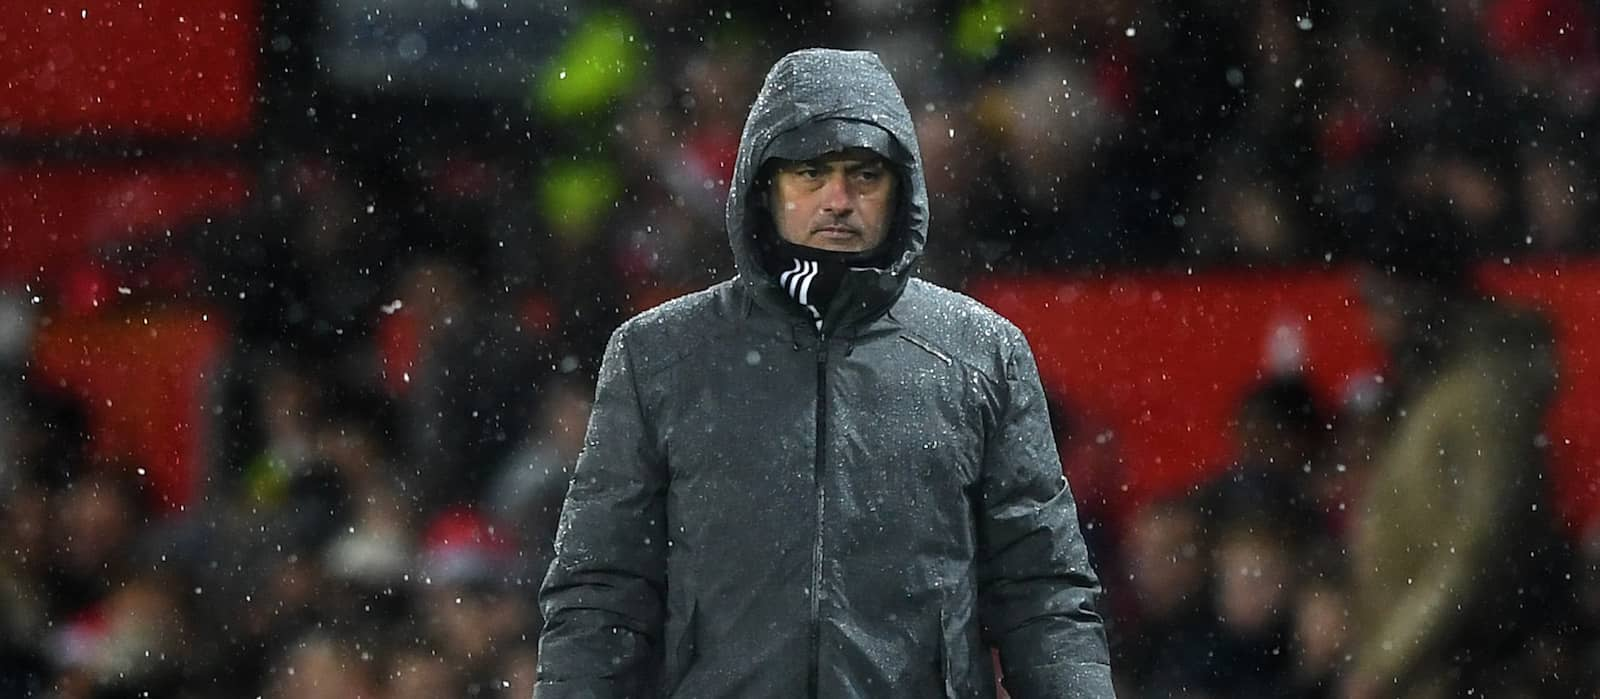 Jose Mourinho insists Manchester United can still win the Premier League title, despite 11 point gap to Man City